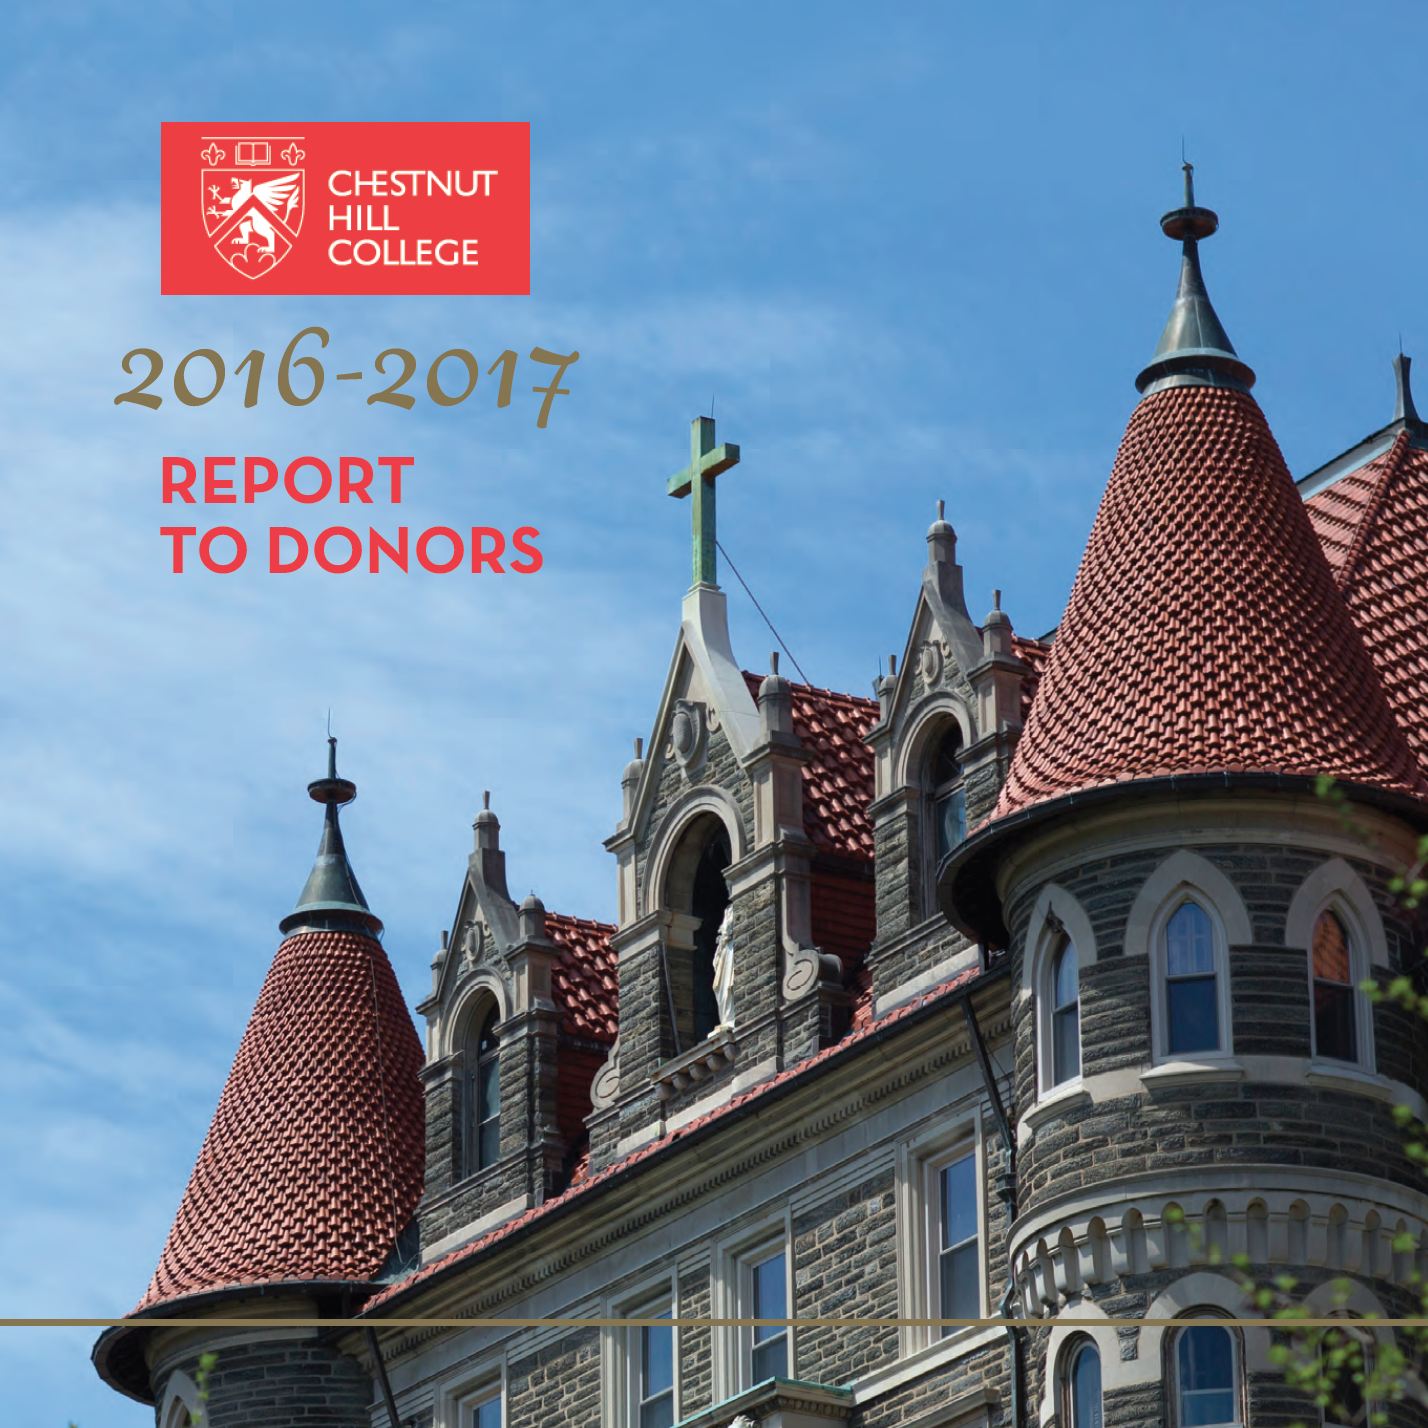 Chestnut Hill College Donor Report 2016-2017